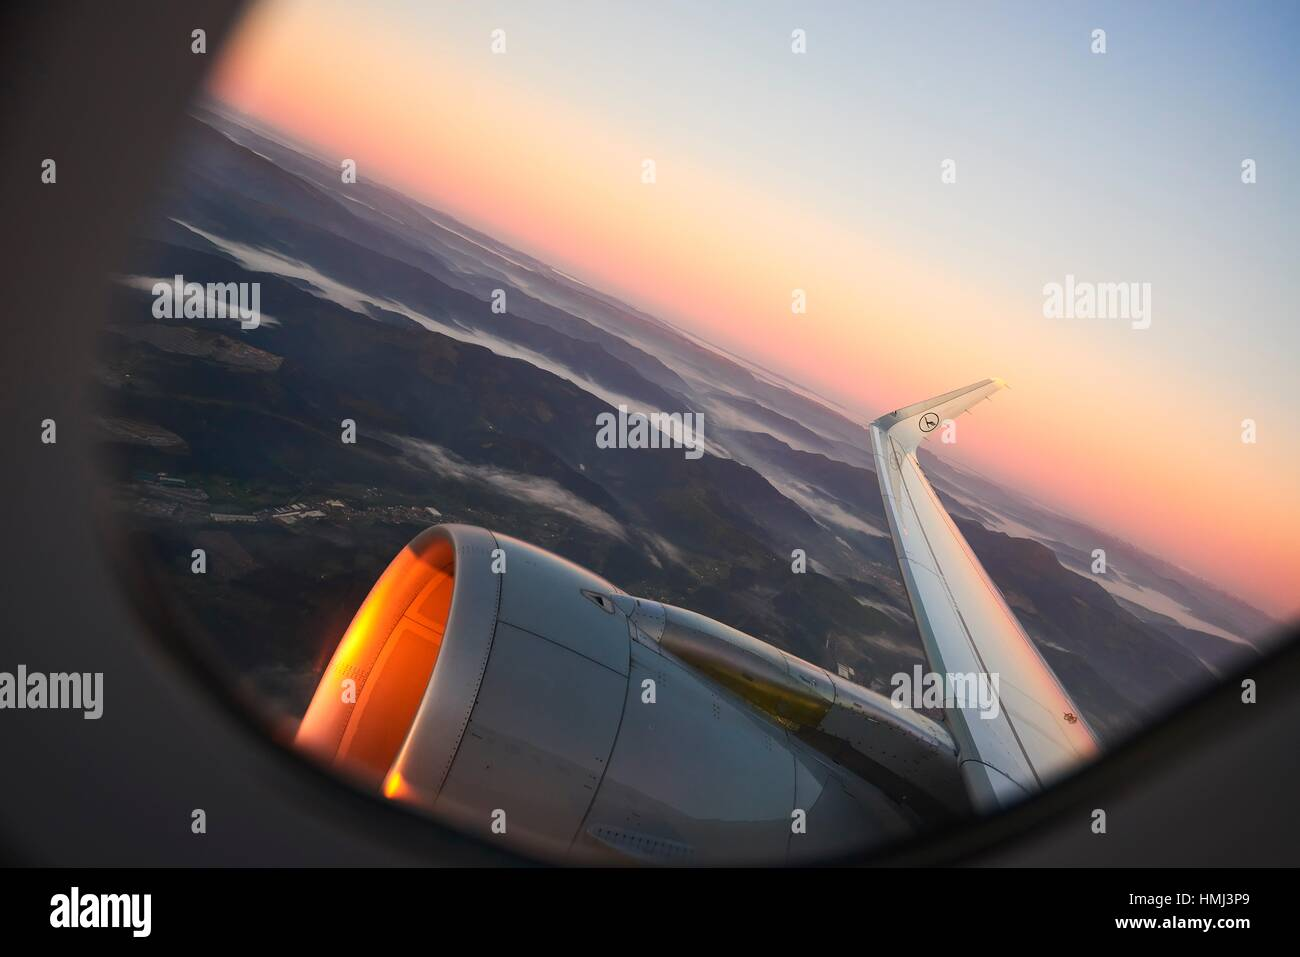 View from the Airplane Window at Sunset - Stock Image